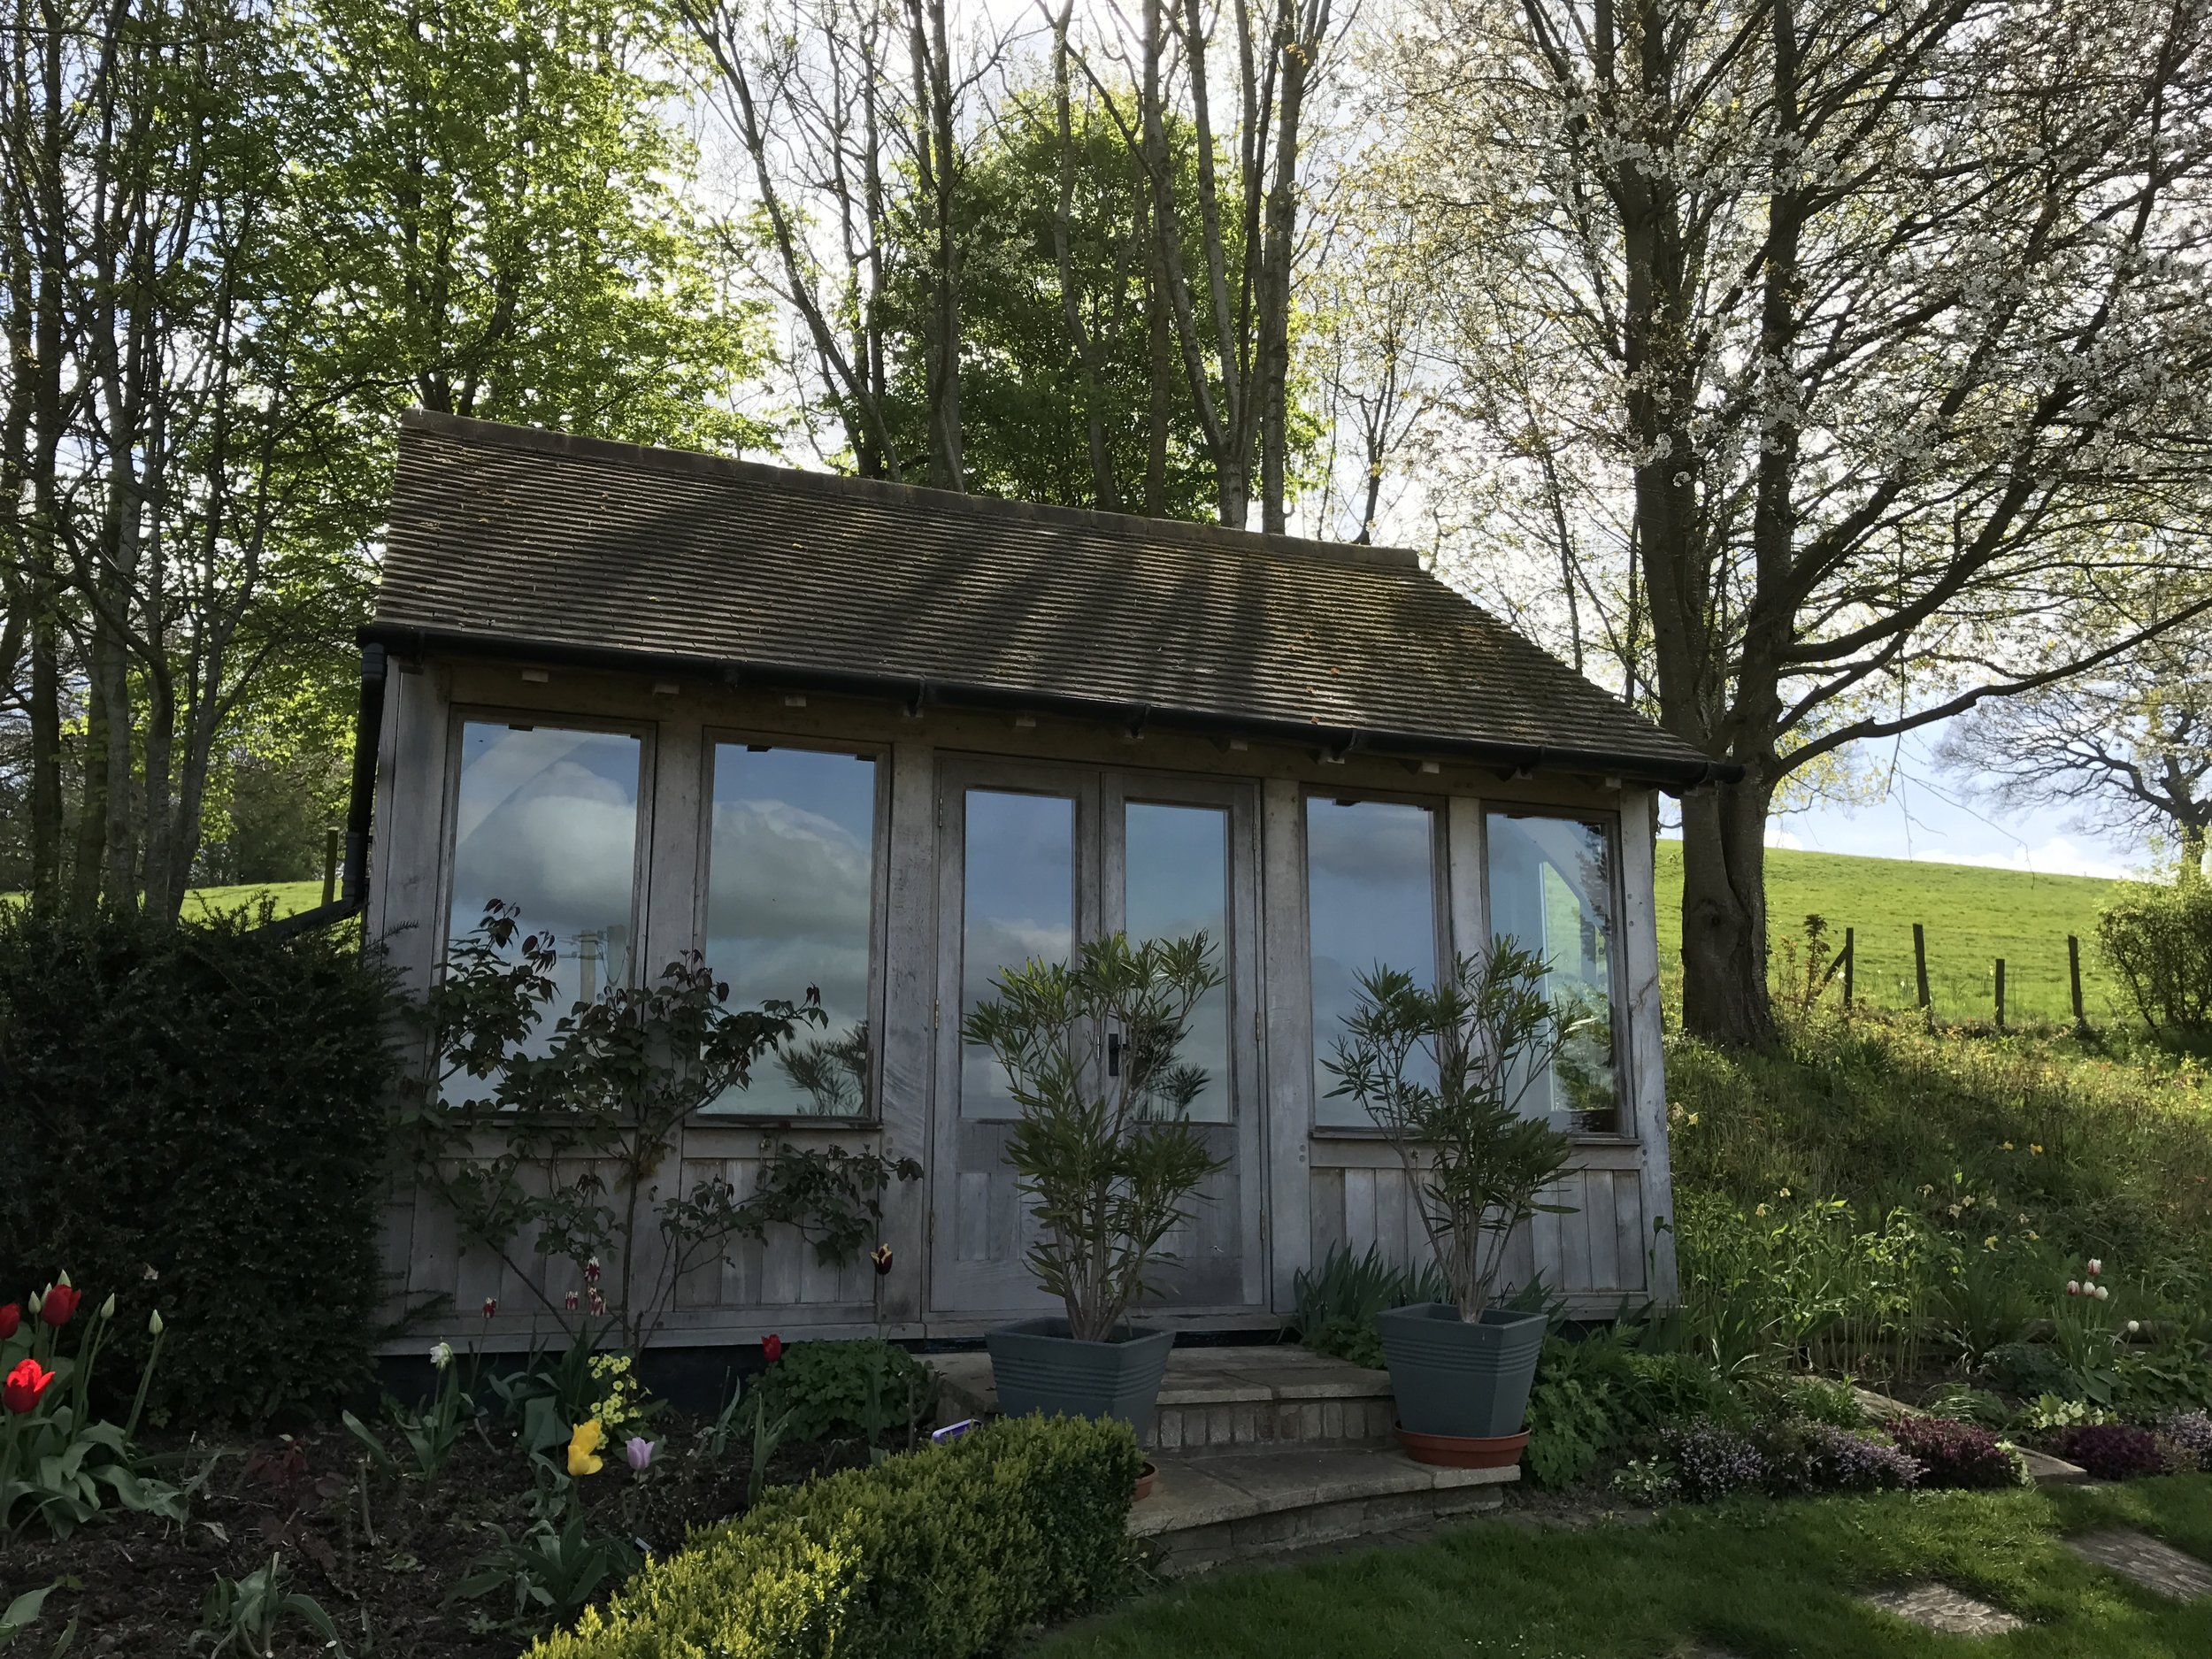 Beautiful setting for the summerhouse